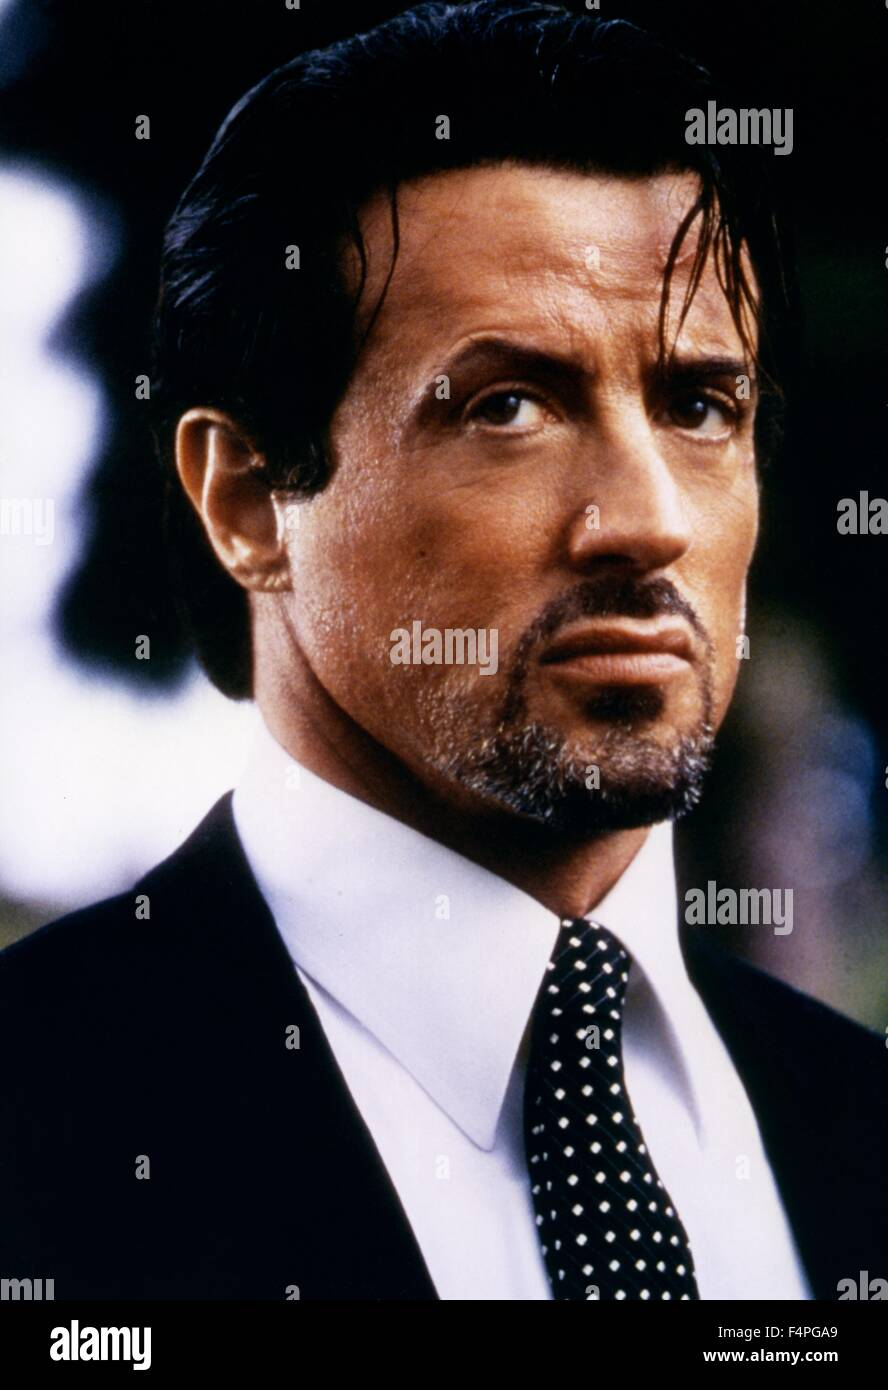 Sylvester Stallone / Get Carter / 2000 directed by Stephen Kay - Stock Image